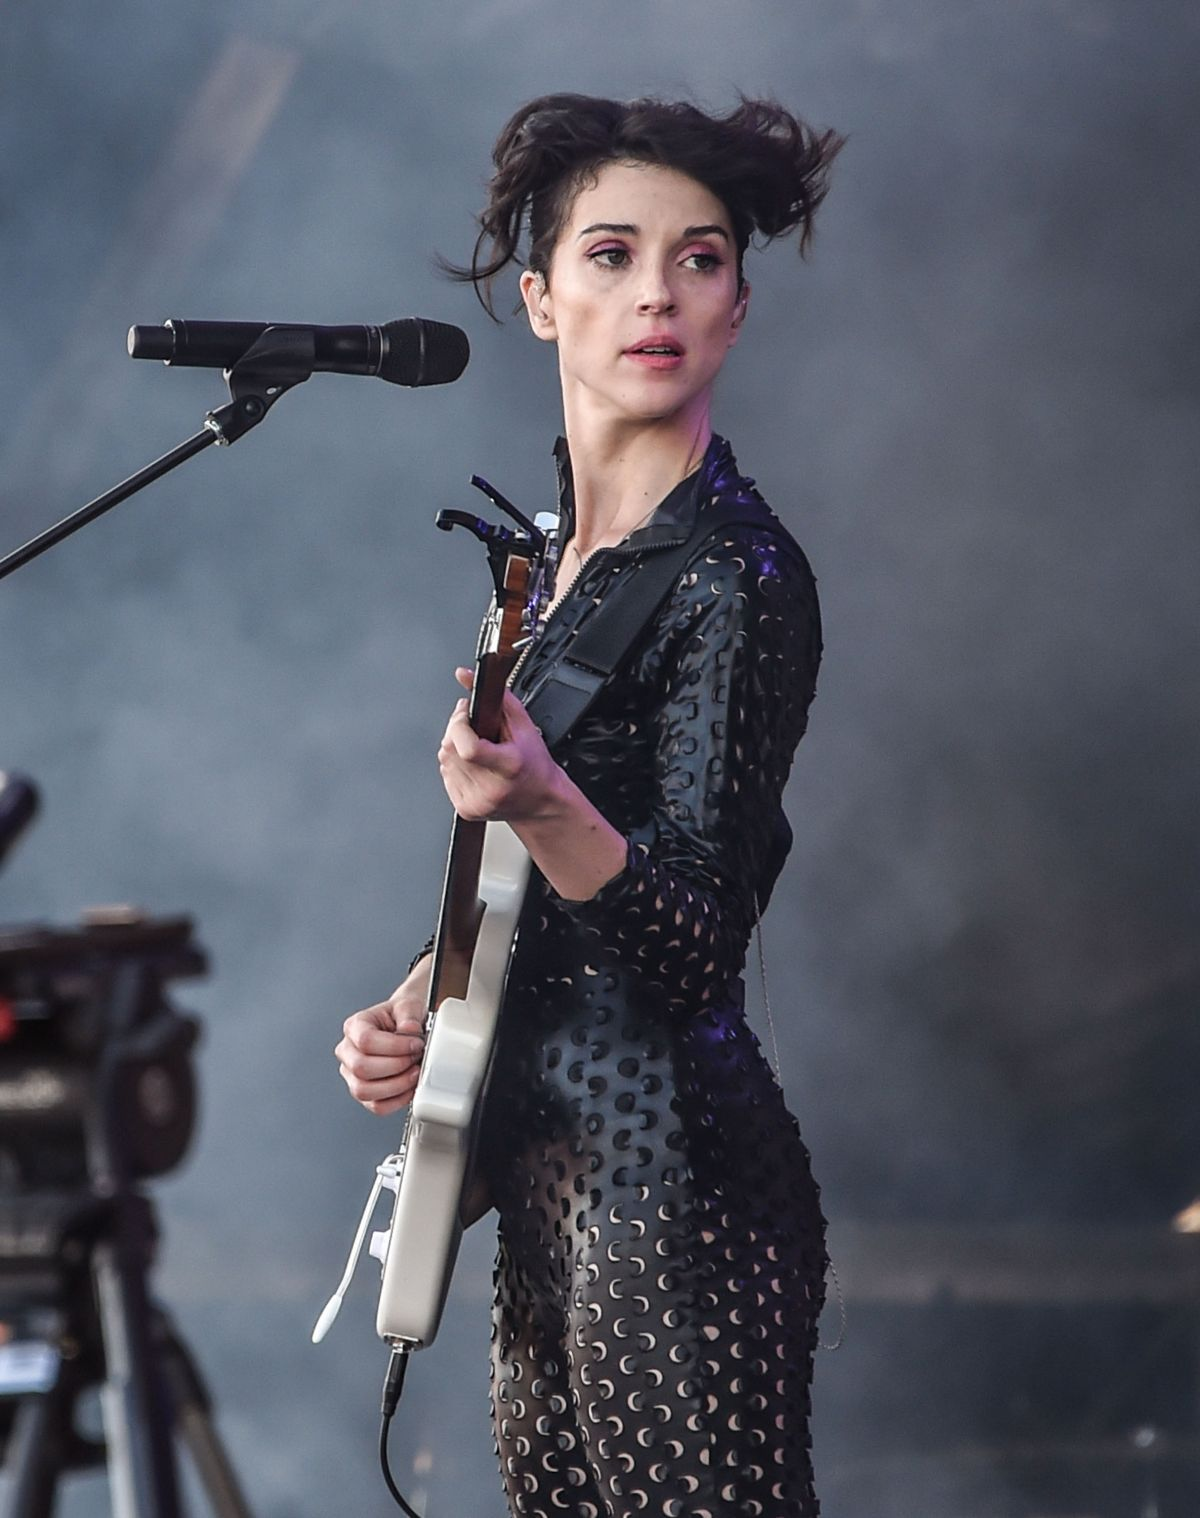 ANNIE CLARK Performs at Osheaga Music and Arts Festival in Montreal